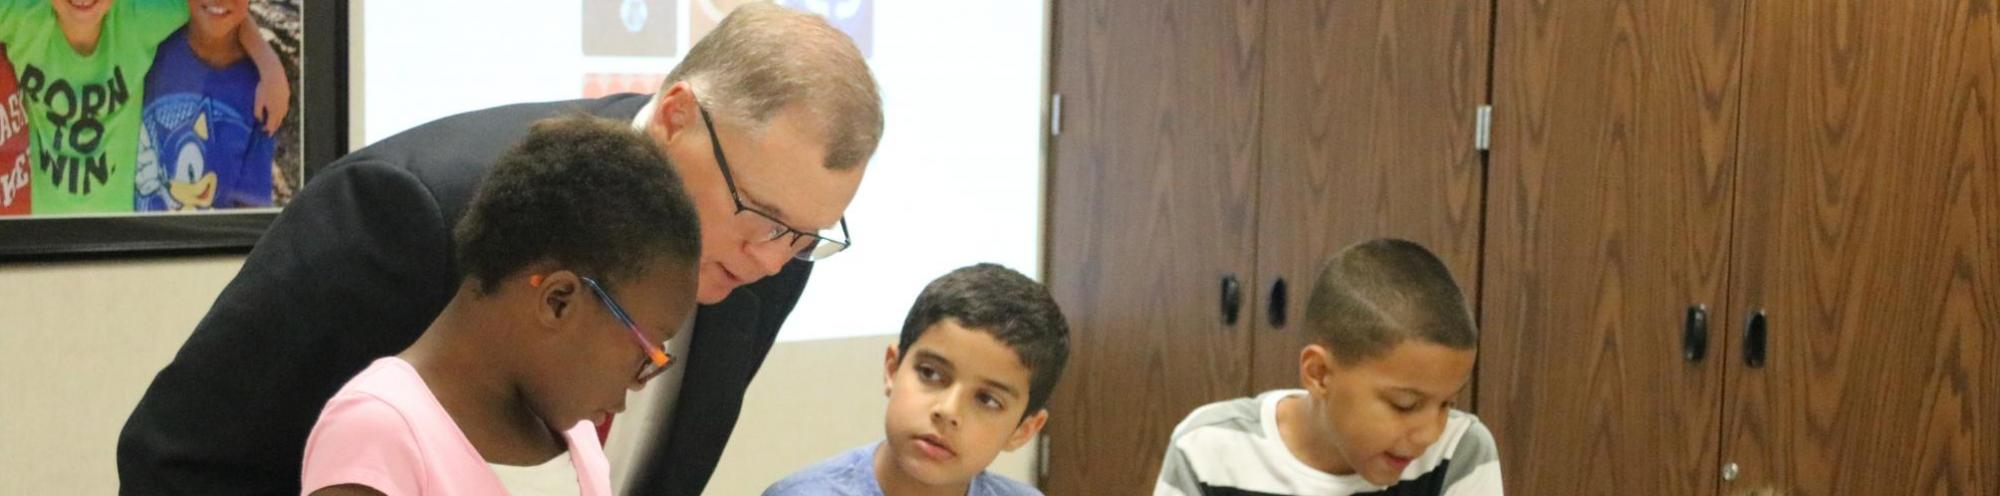 Dr. Sutfin with Elementary STEM students